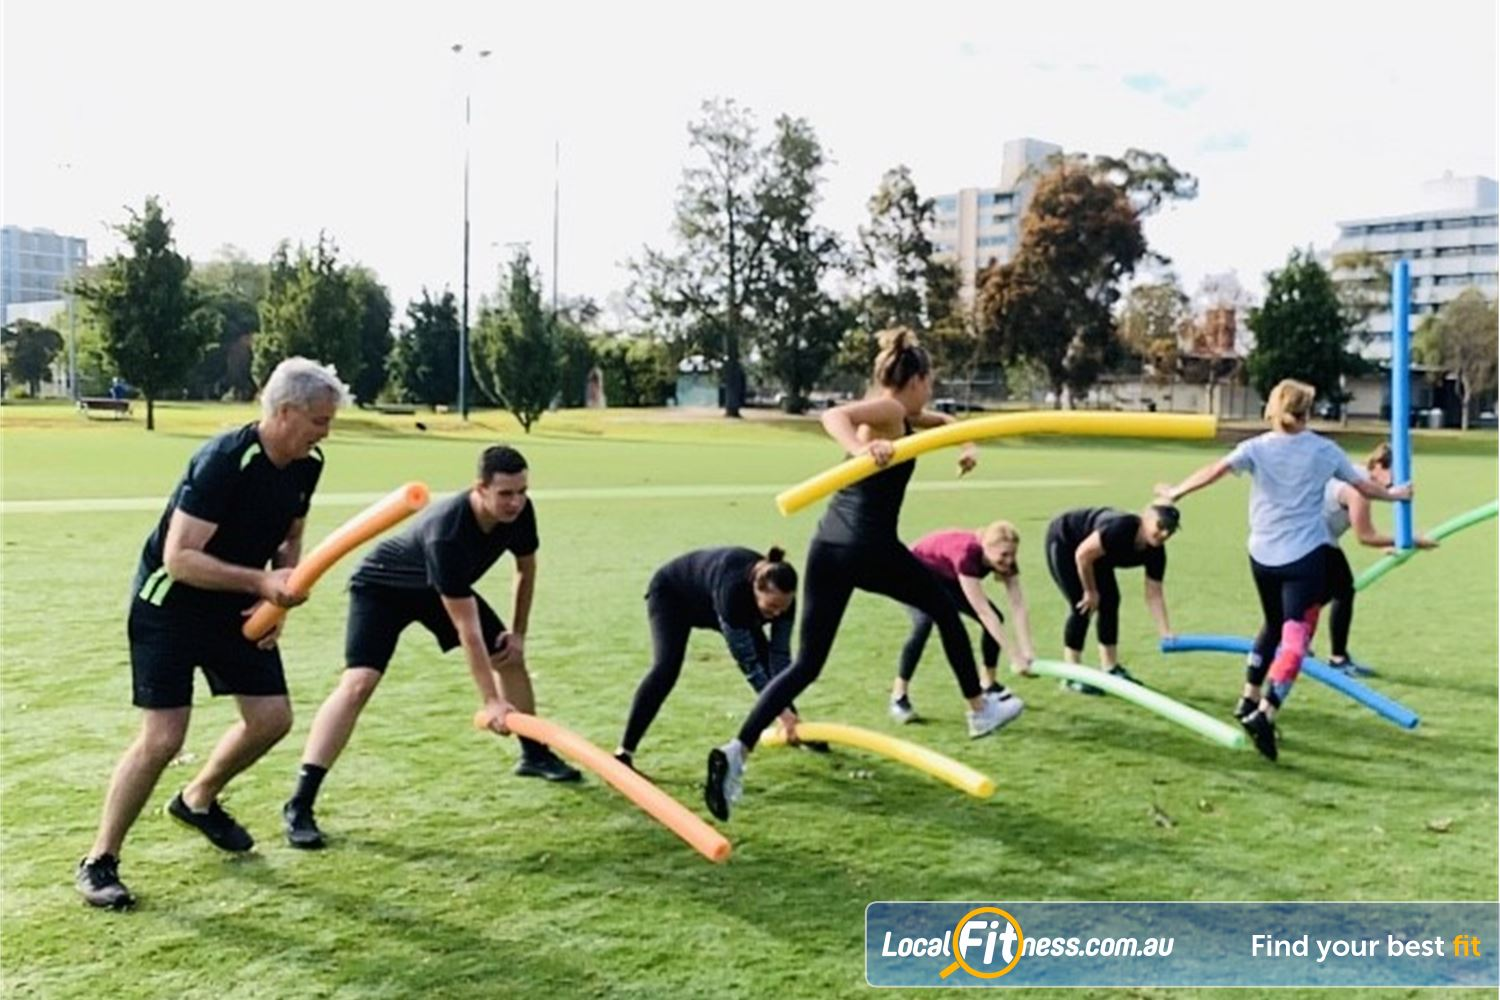 Long Live You Prahran Our Prahran outdoor fitness classes including HIIT and Resistance training.